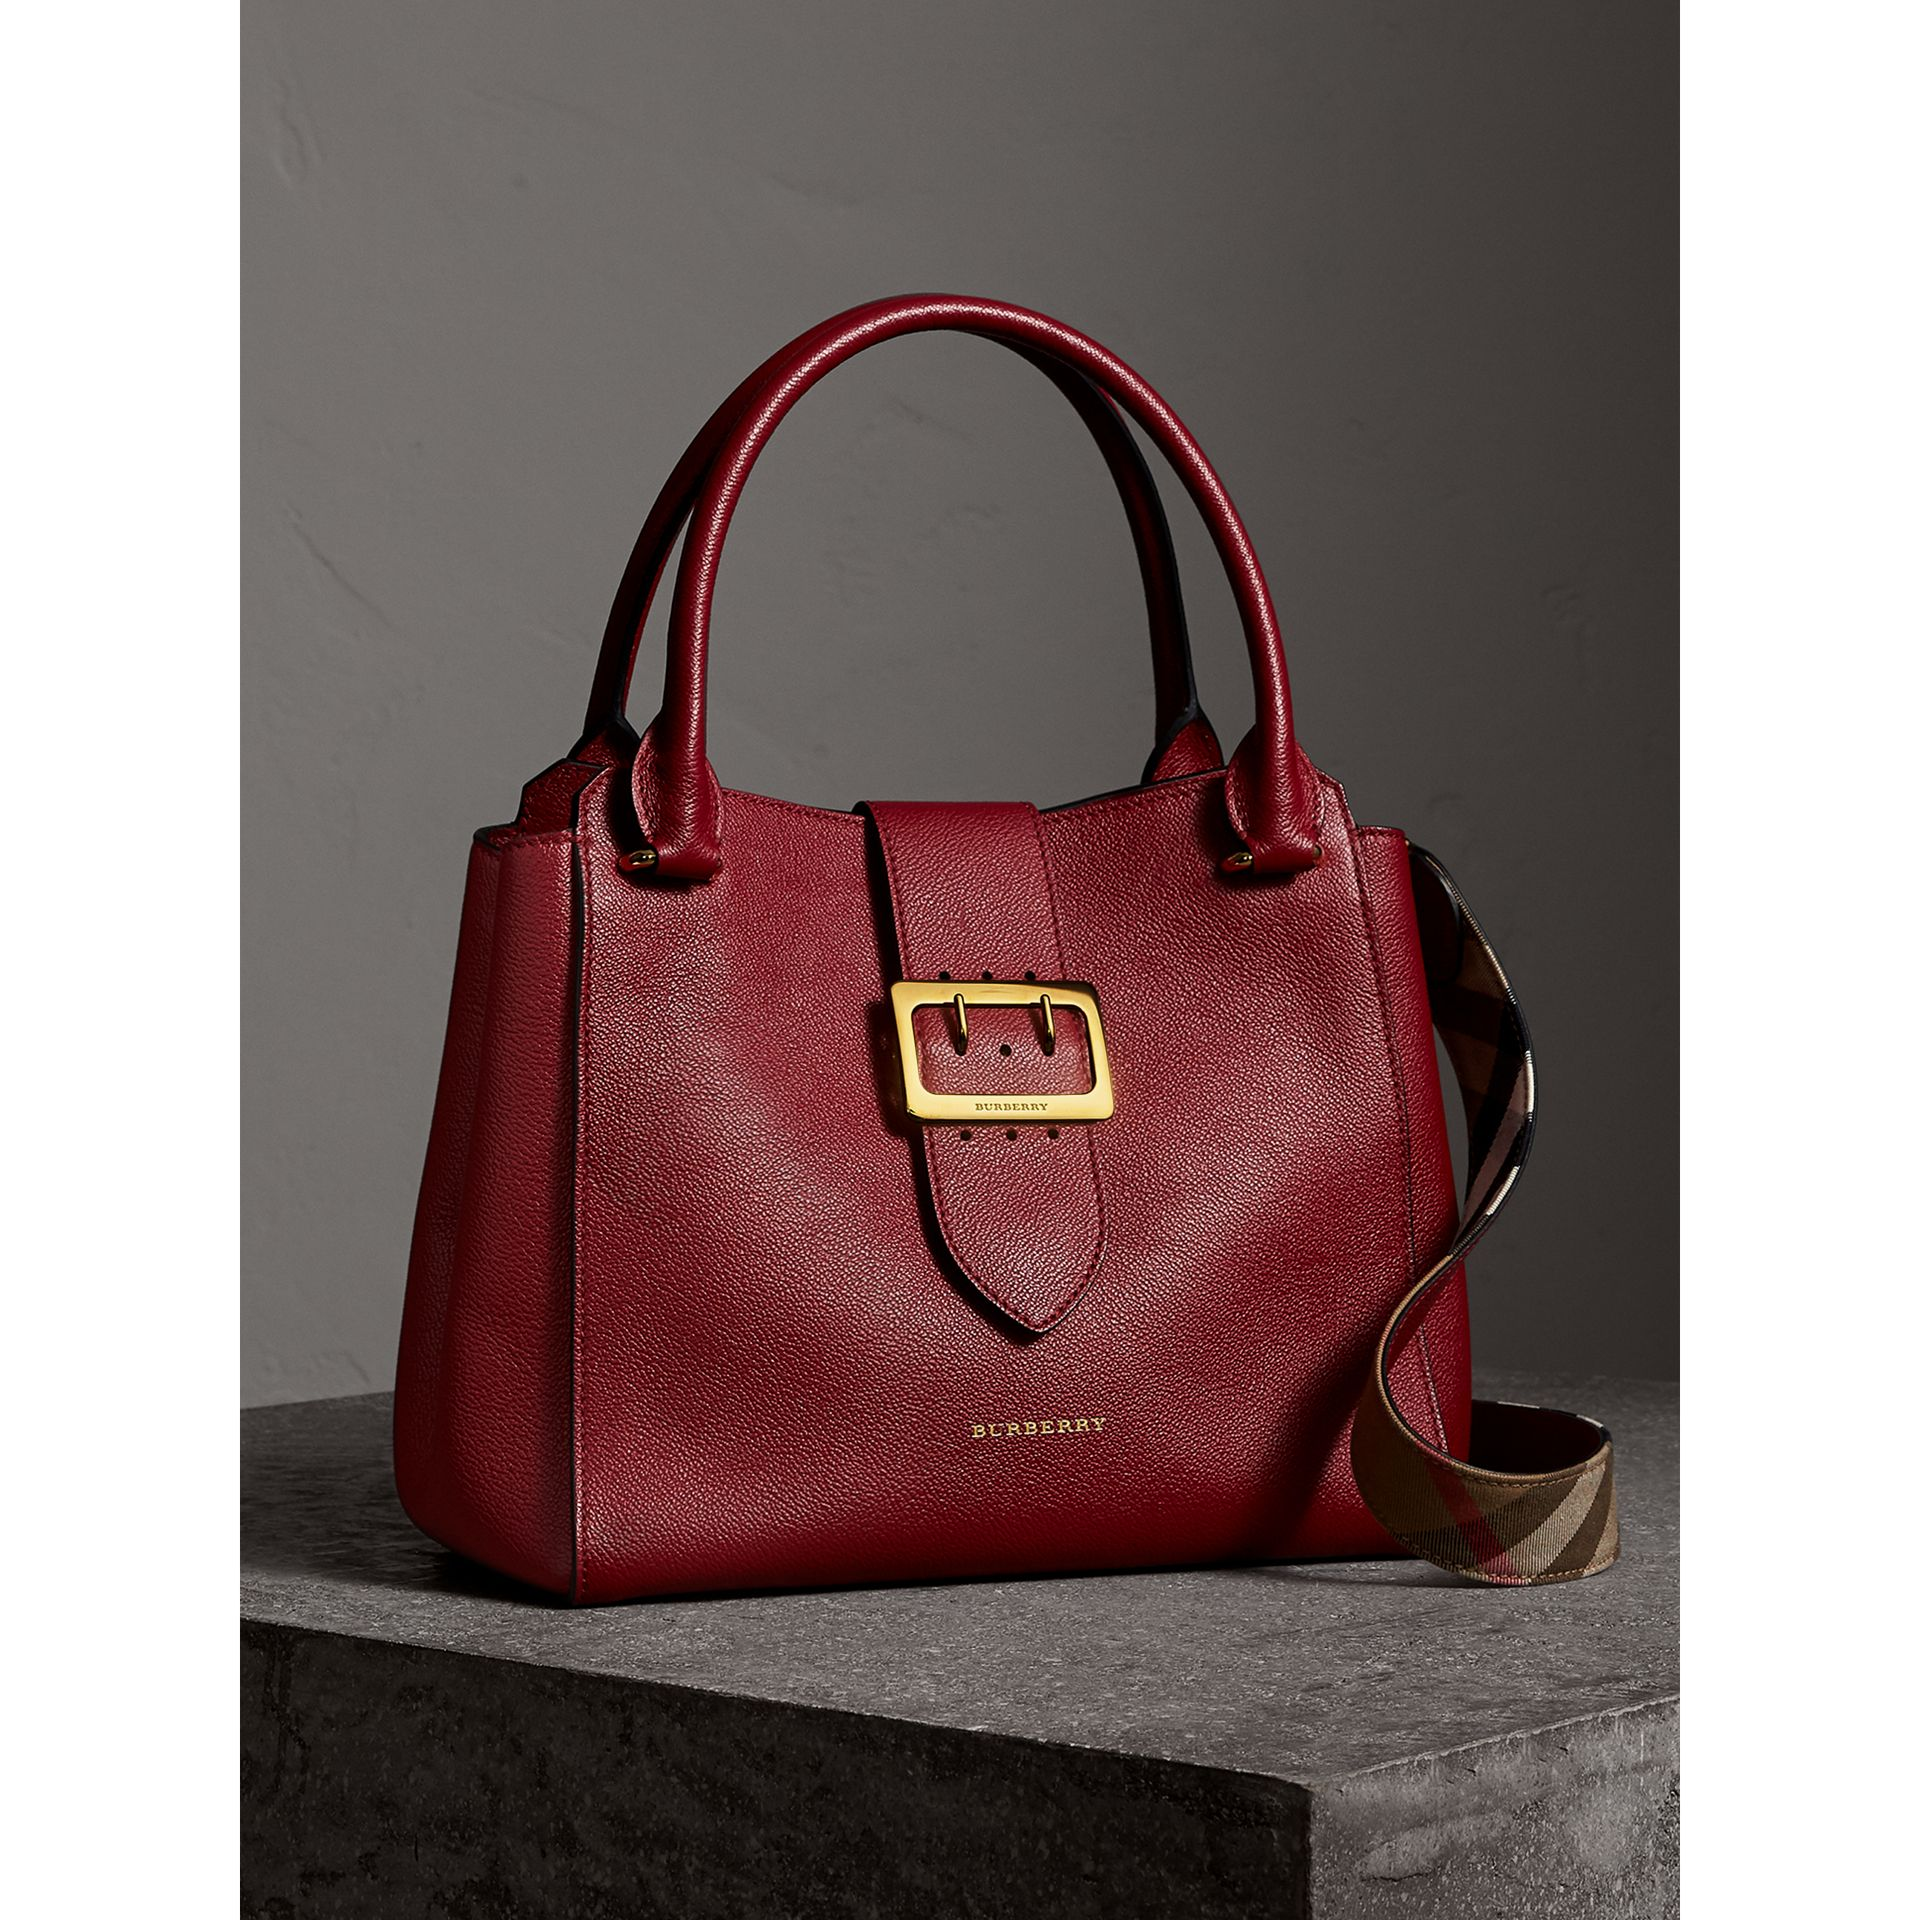 b2c2978eb350 Burberry The Medium Buckle Tote in Grainy Leather at £1190